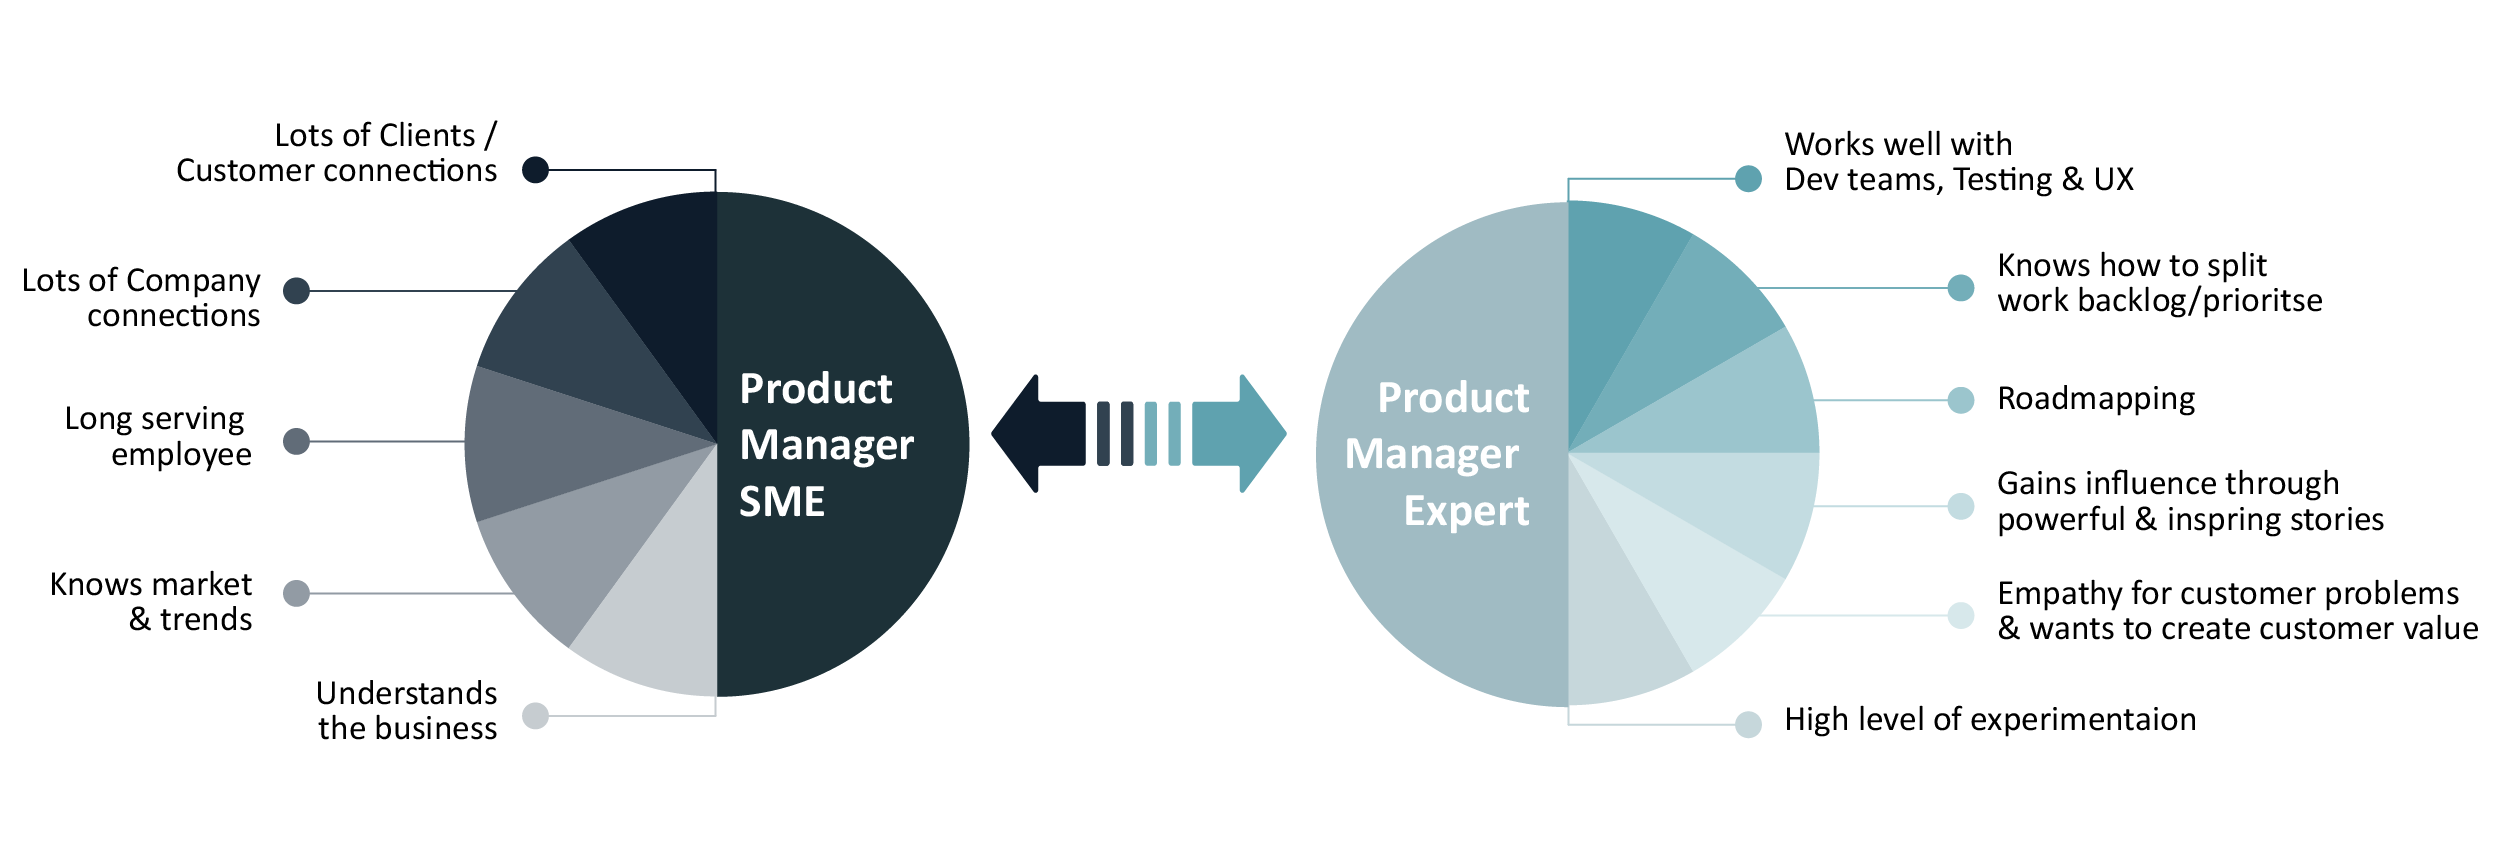 Product Manger Product Manager Expert